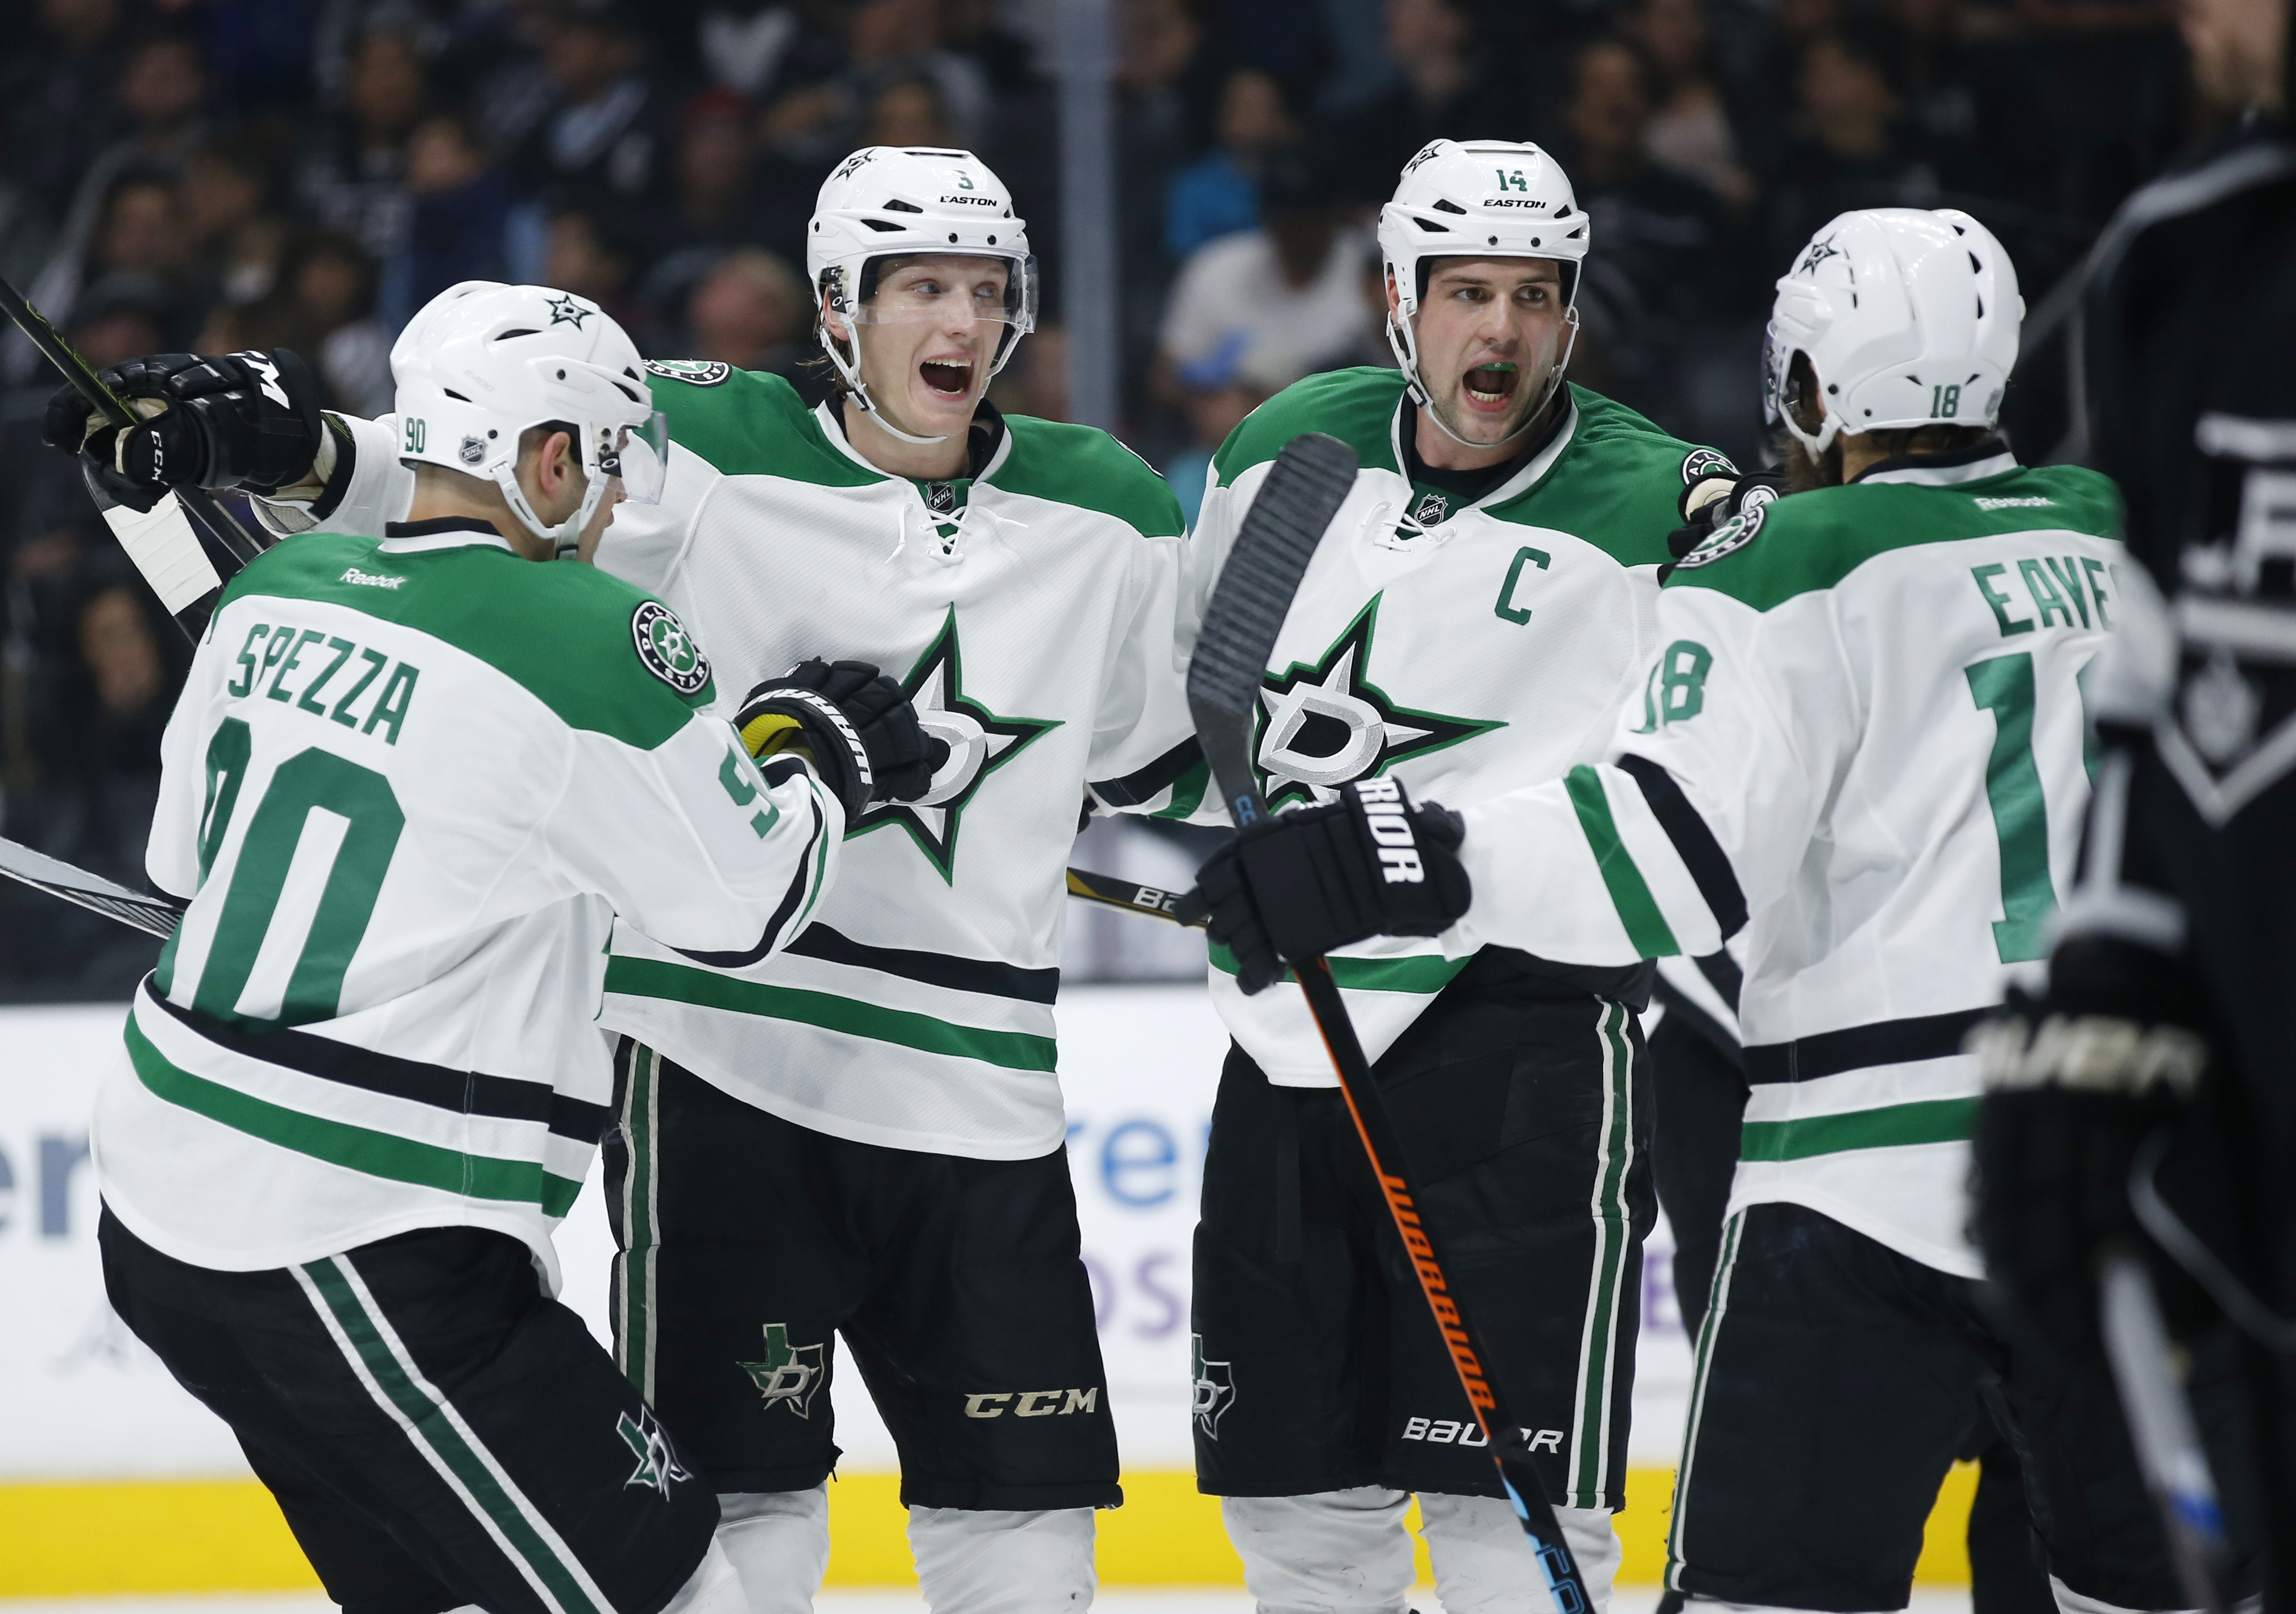 FILE - In this April 2, 2016, file photo, Dallas Stars left wing Jamie Benn, second from right, celebrates his power play goal with teammates, from left to right, Jason Spezza, John Klingberg and Patrick Eaves during the first period of an NHL hockey game